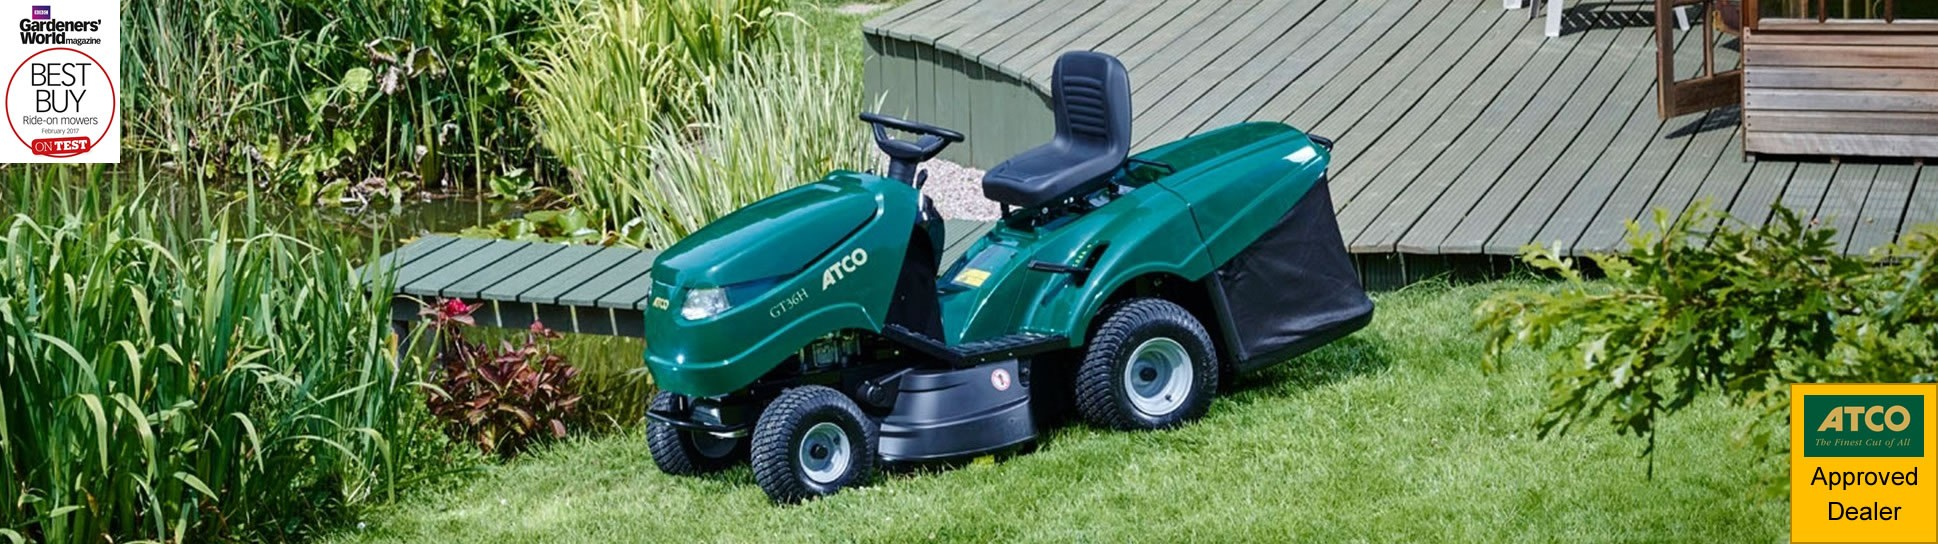 The award winning GT36H from your local ATCO approved dealer